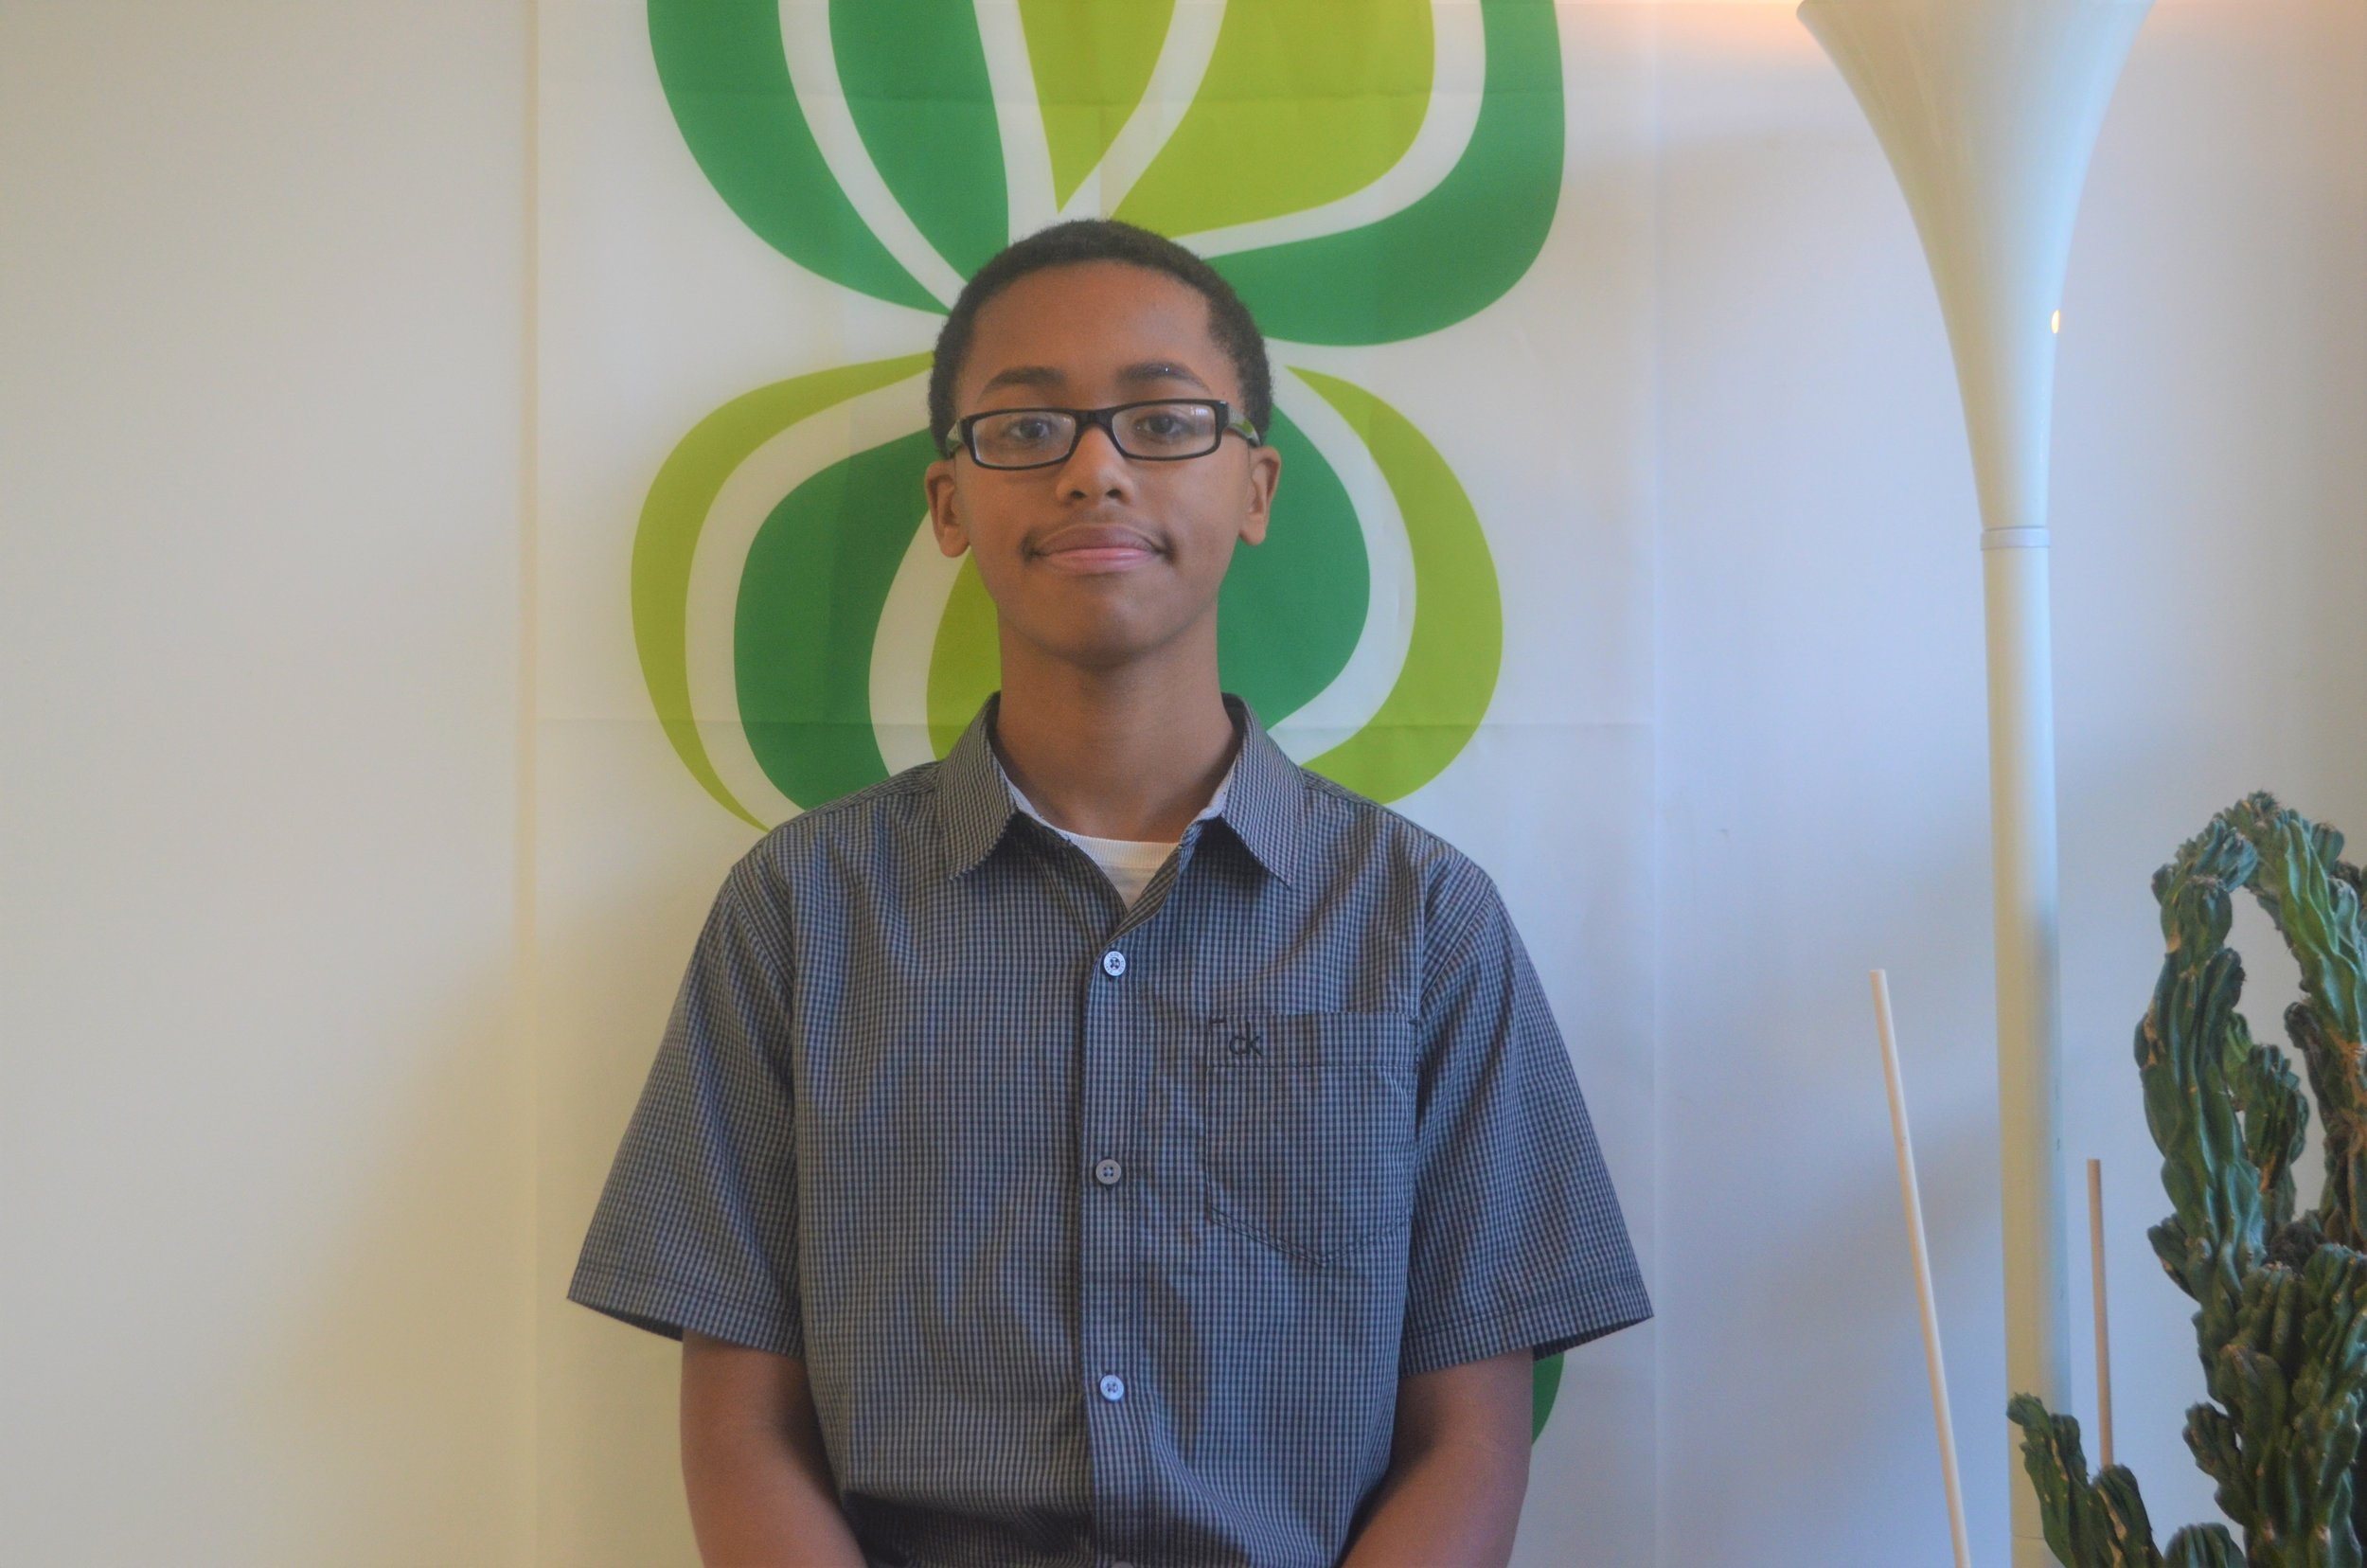 Messiah Allah   I am Messiah. My nickname is Siah. I am in 9th grade and attend Fairchild Wheeler. I like to play games.